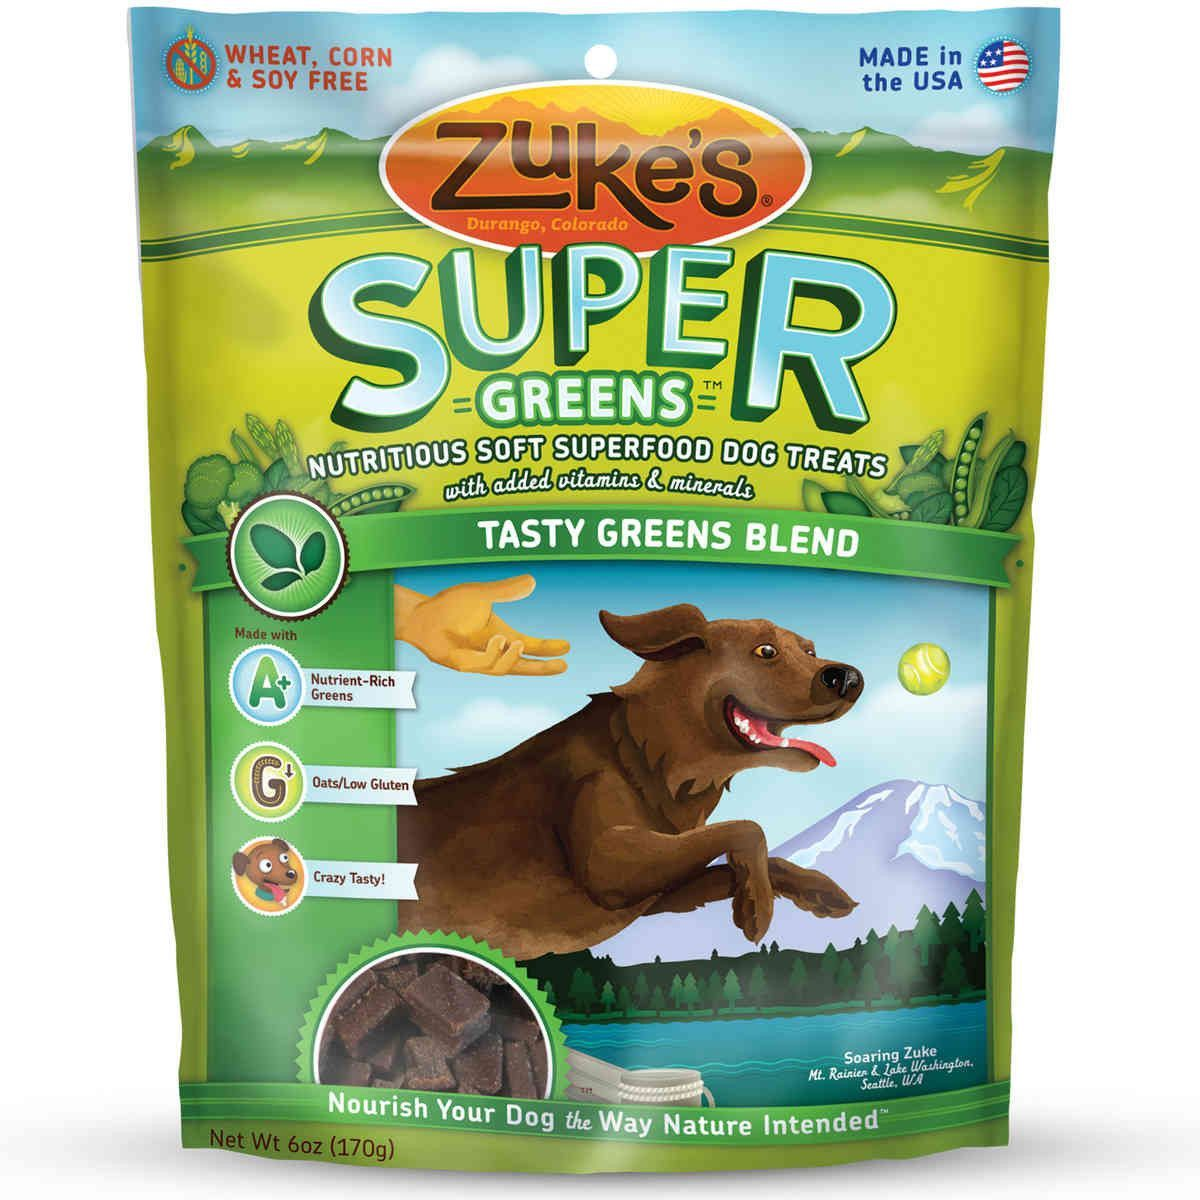 Zuke S Supers All Natural Nutritious Soft Superfood Dog Treats